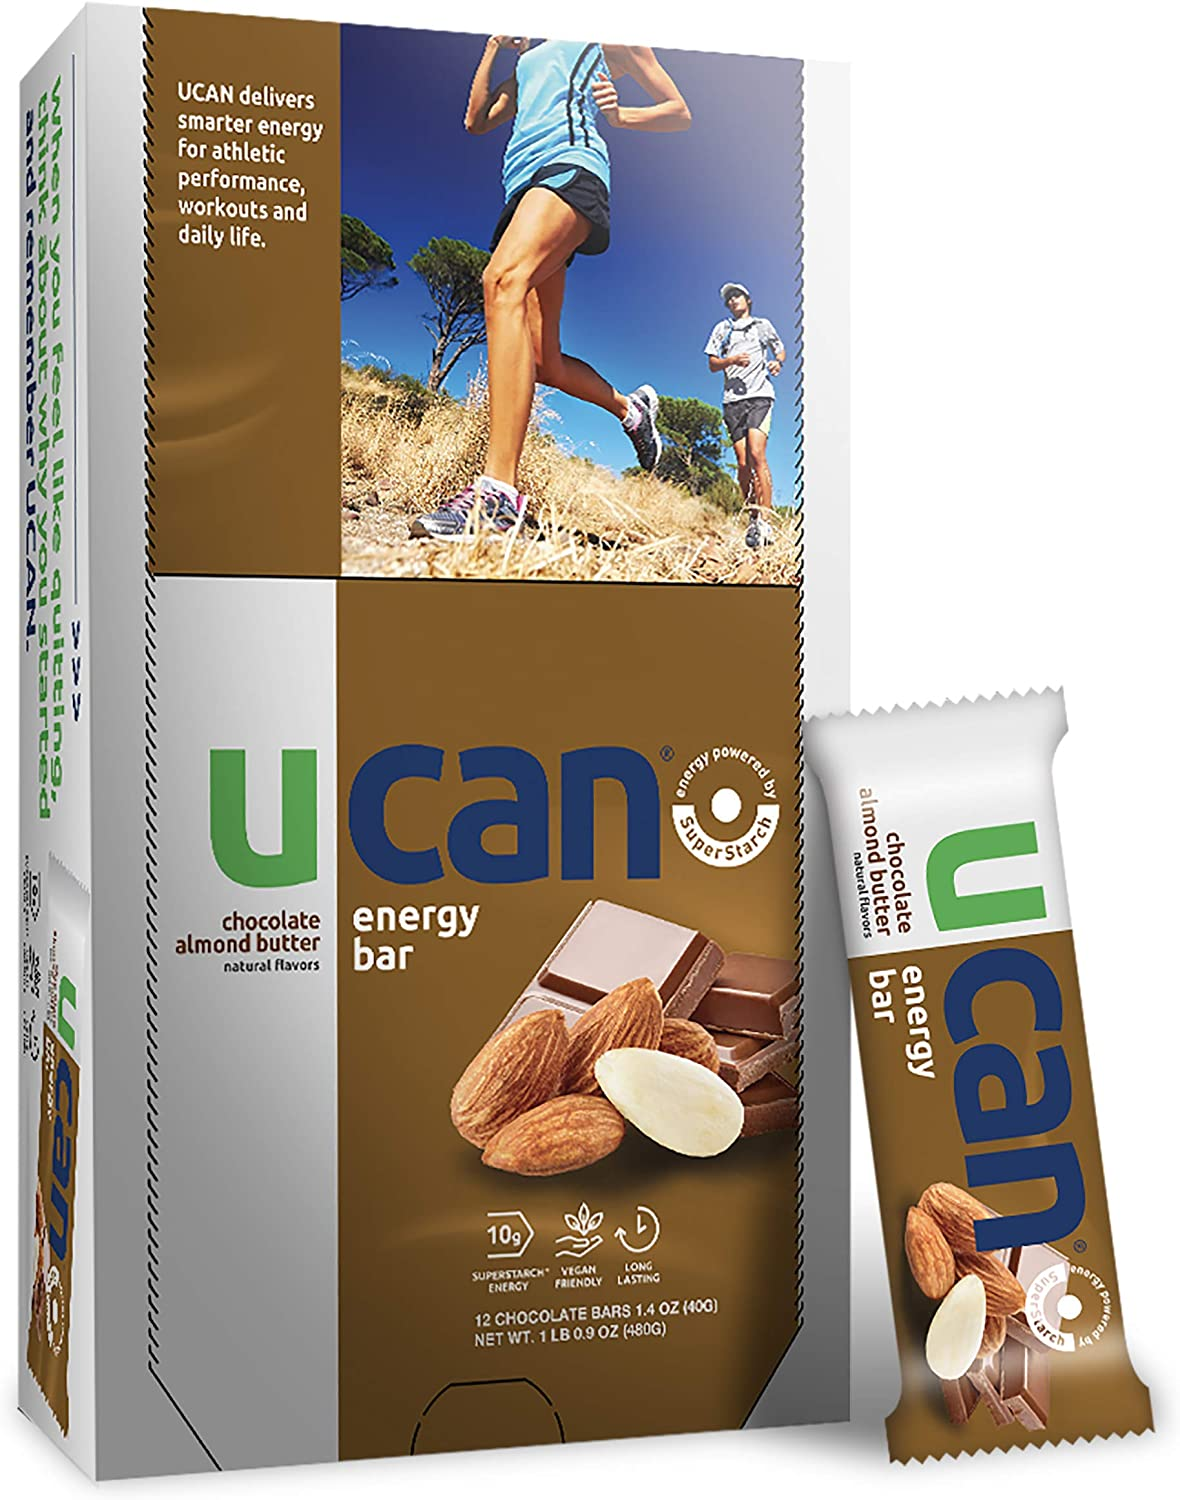 UCAN Plant Based Energy Bars - Long Lasting Healthy Energy Snack - No Added Sugar, No Soy, Non-GMO, Vegan, Gluten Free, Keto Friendly w/ Plant Based Protein -12 Count - Chocolate Almond Butter